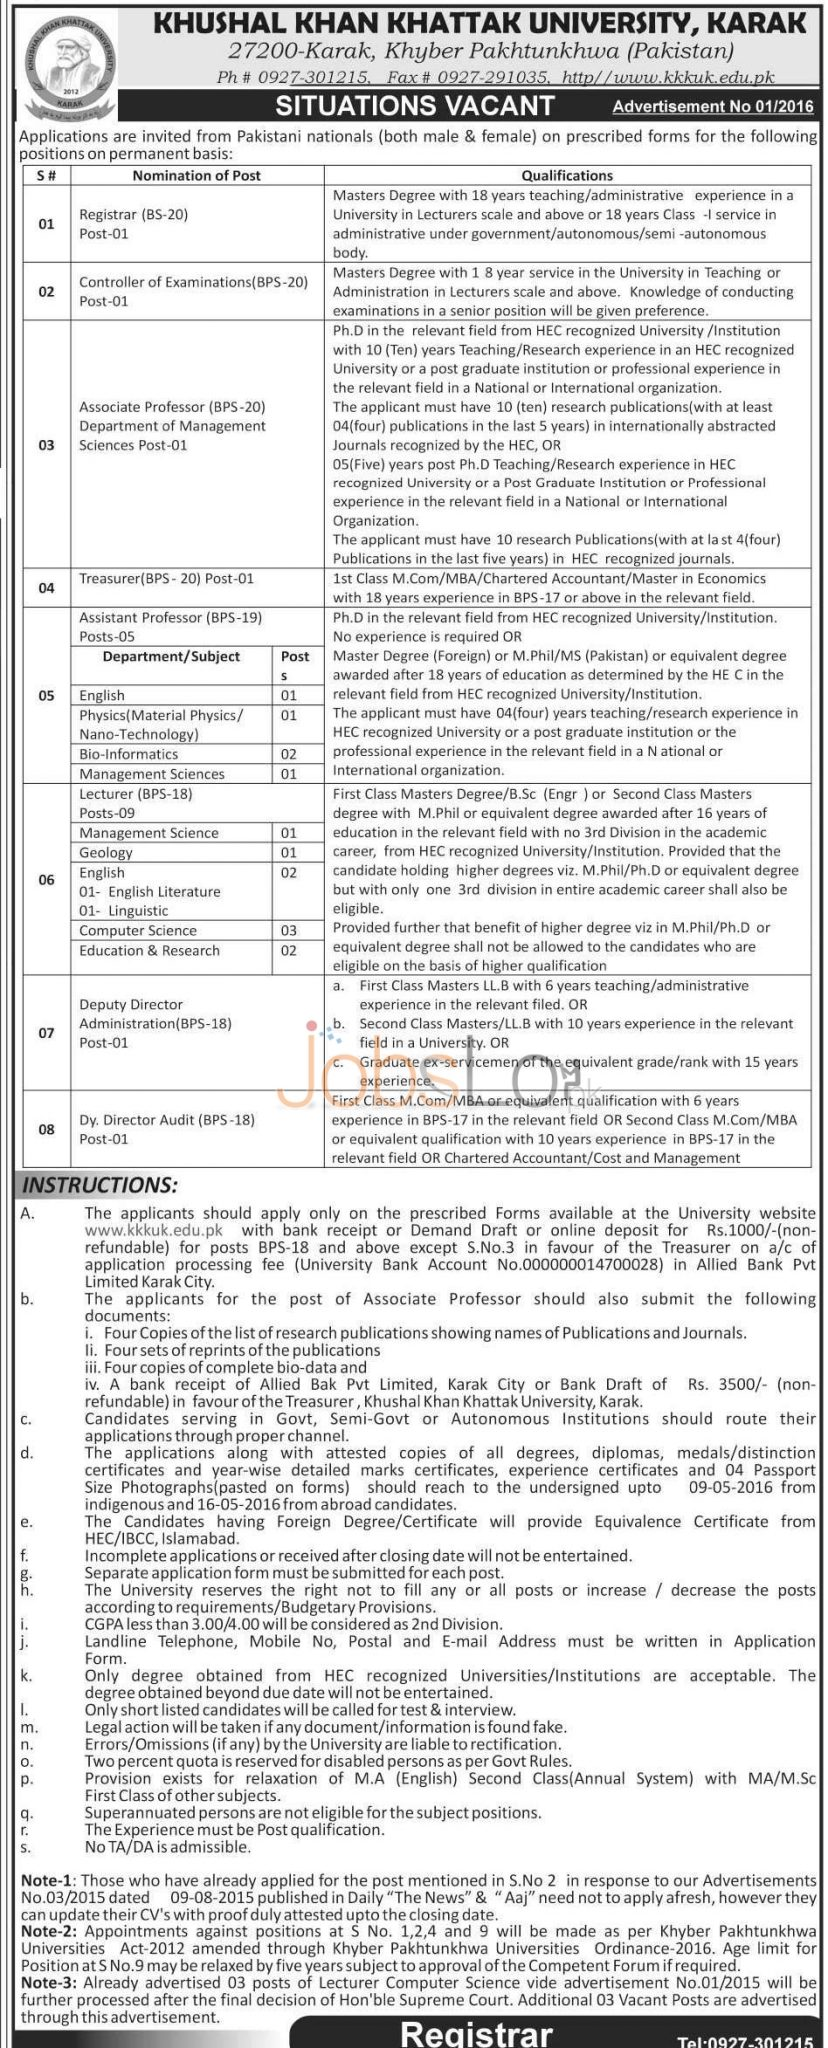 Khushal khan khattak University Jobs